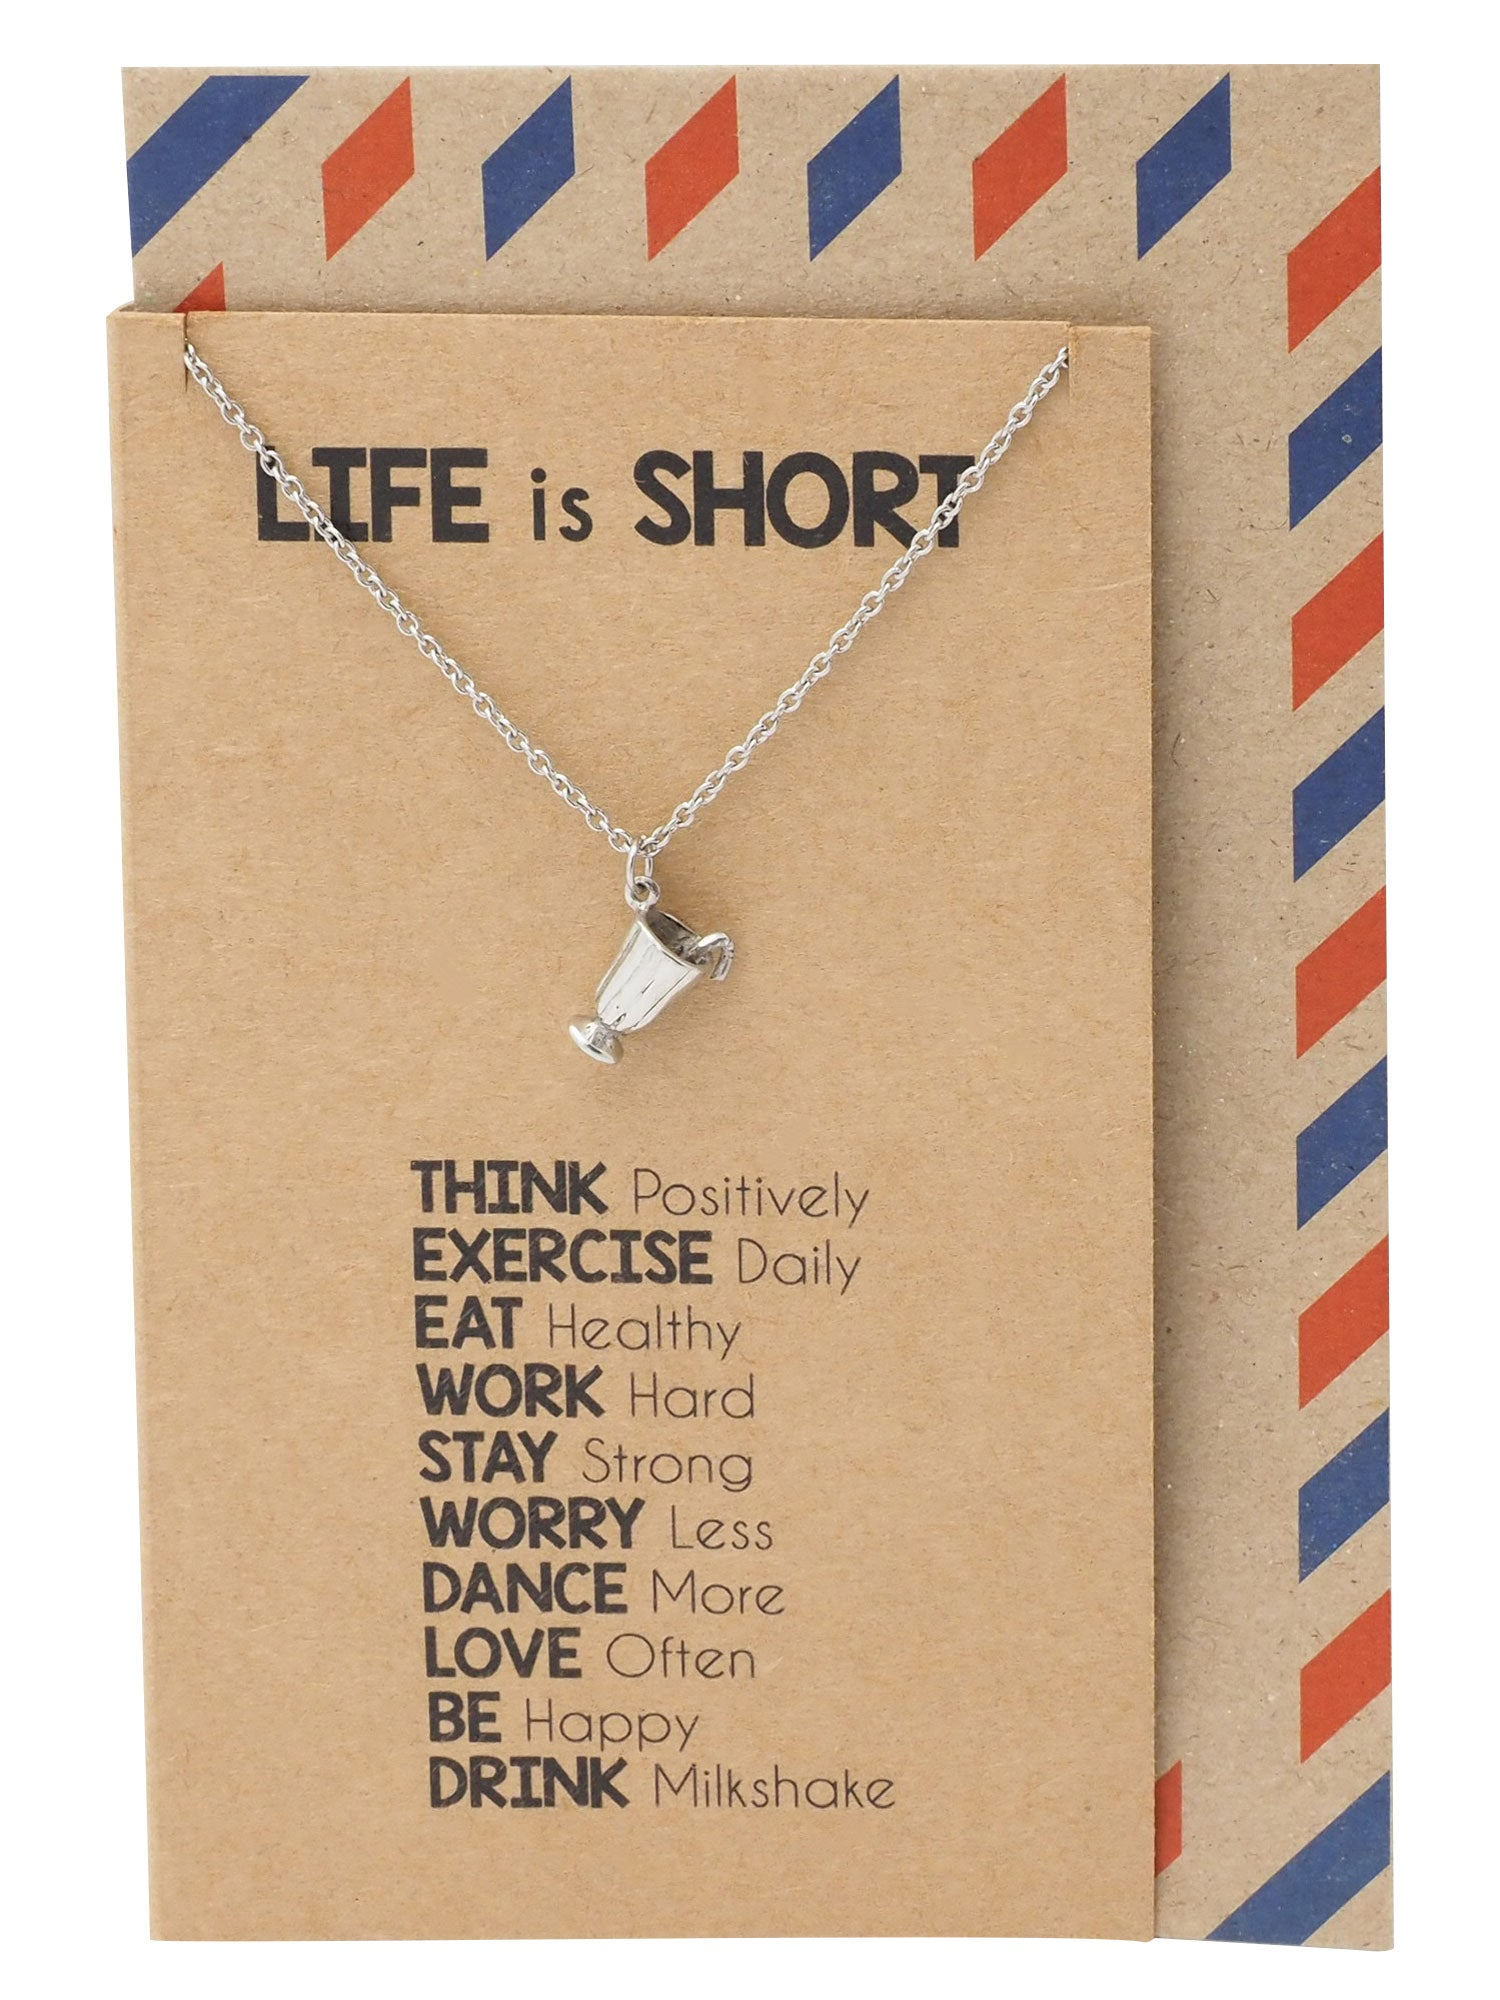 Sadie Life is Short Drink Milkshake Necklace, Best Friend Gifts, Inspirational Jewelry Greeting Card